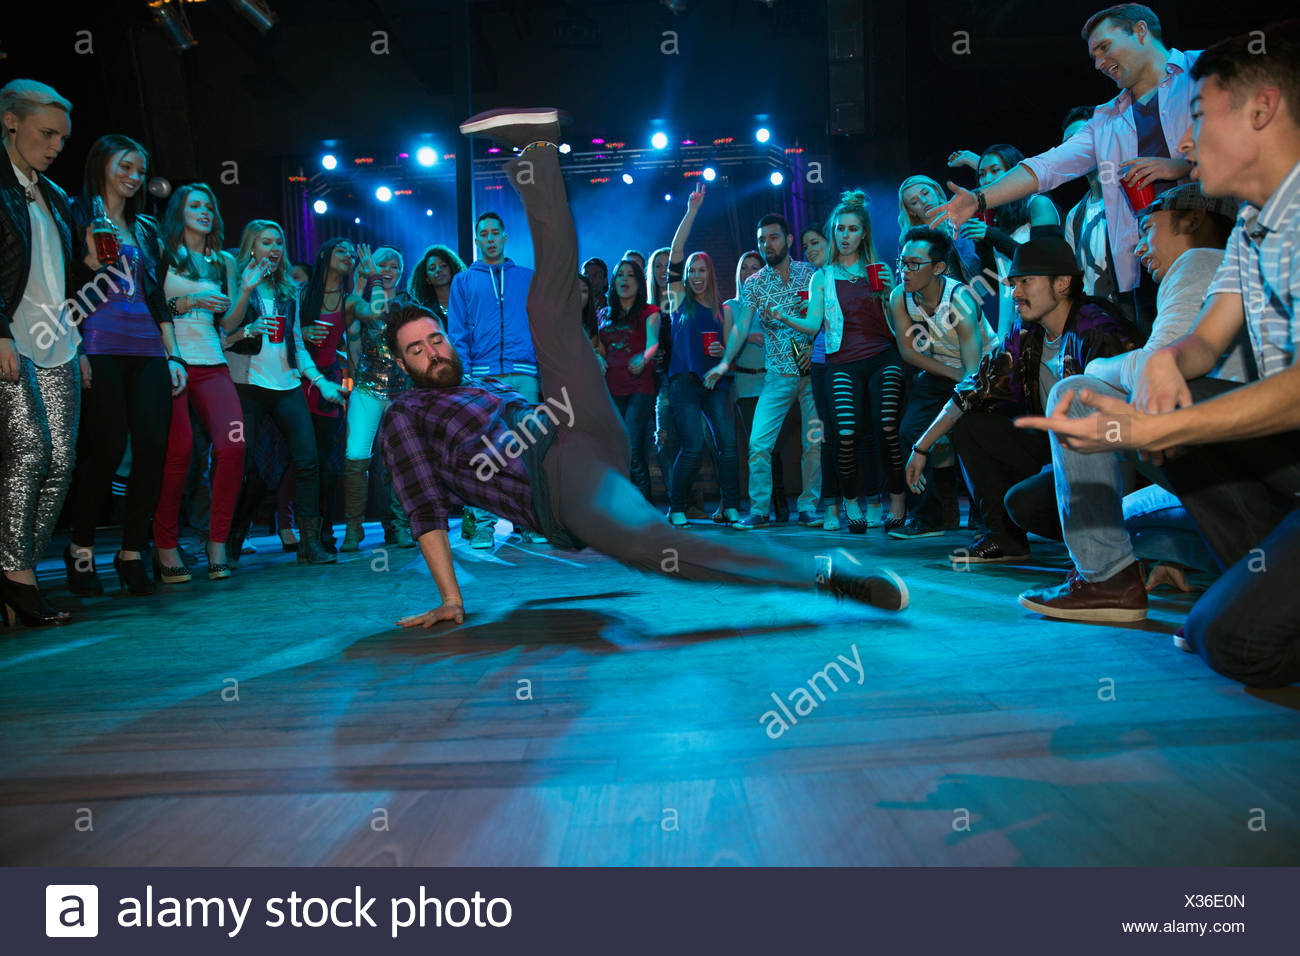 Crowd watching and cheering break dancers - Stock Image